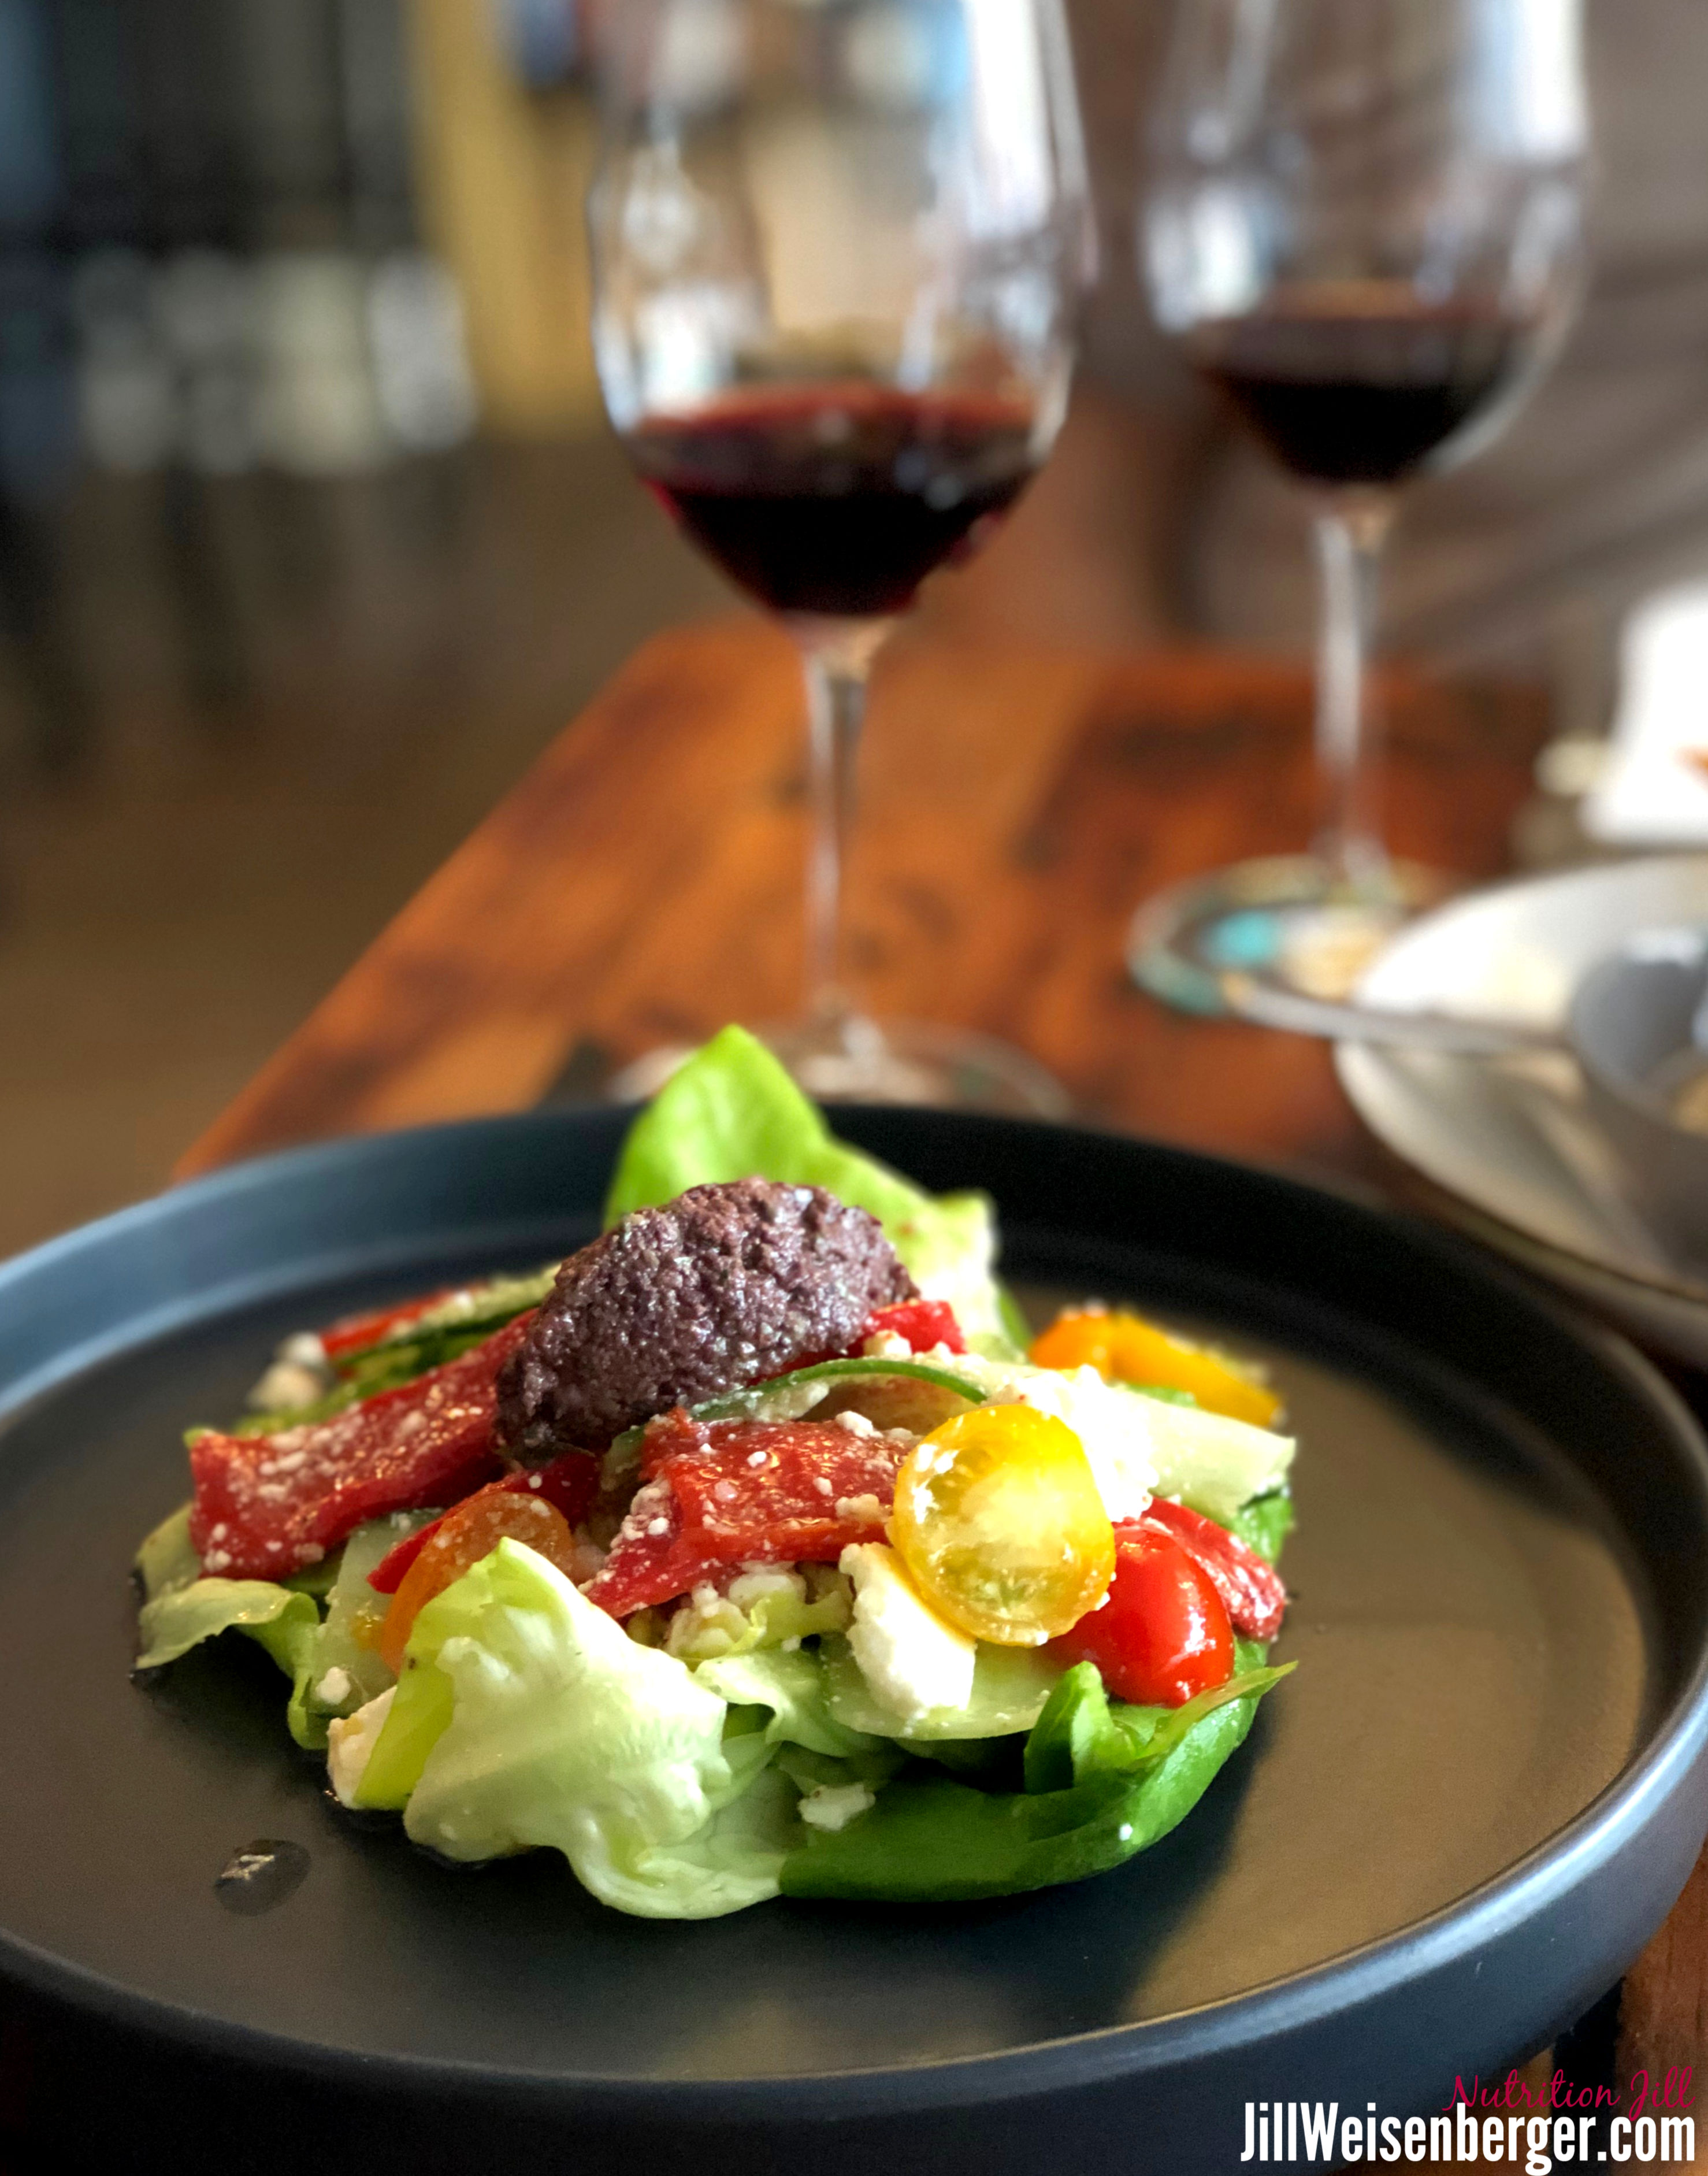 healthy eating out: salad with red wine